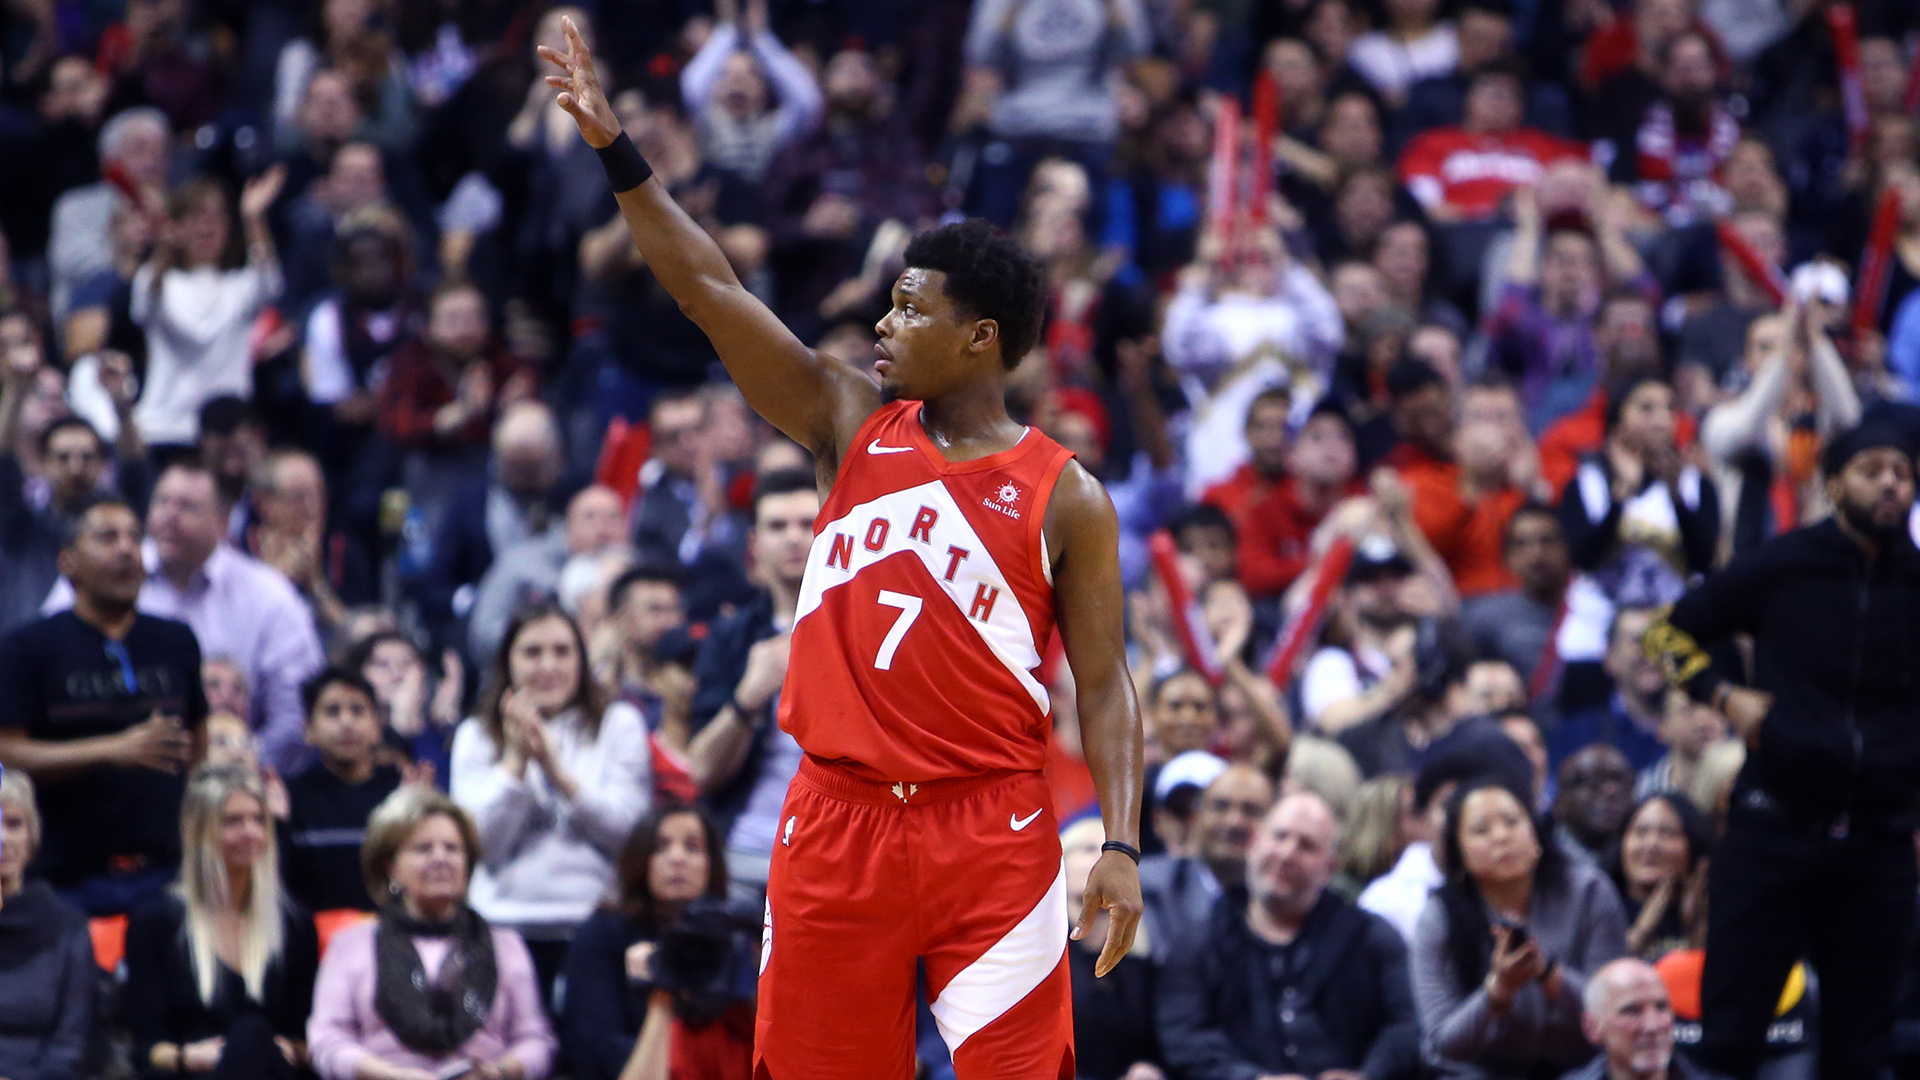 Raptors fans flood social media to thank Kyle Lowry, wish him well in Miami